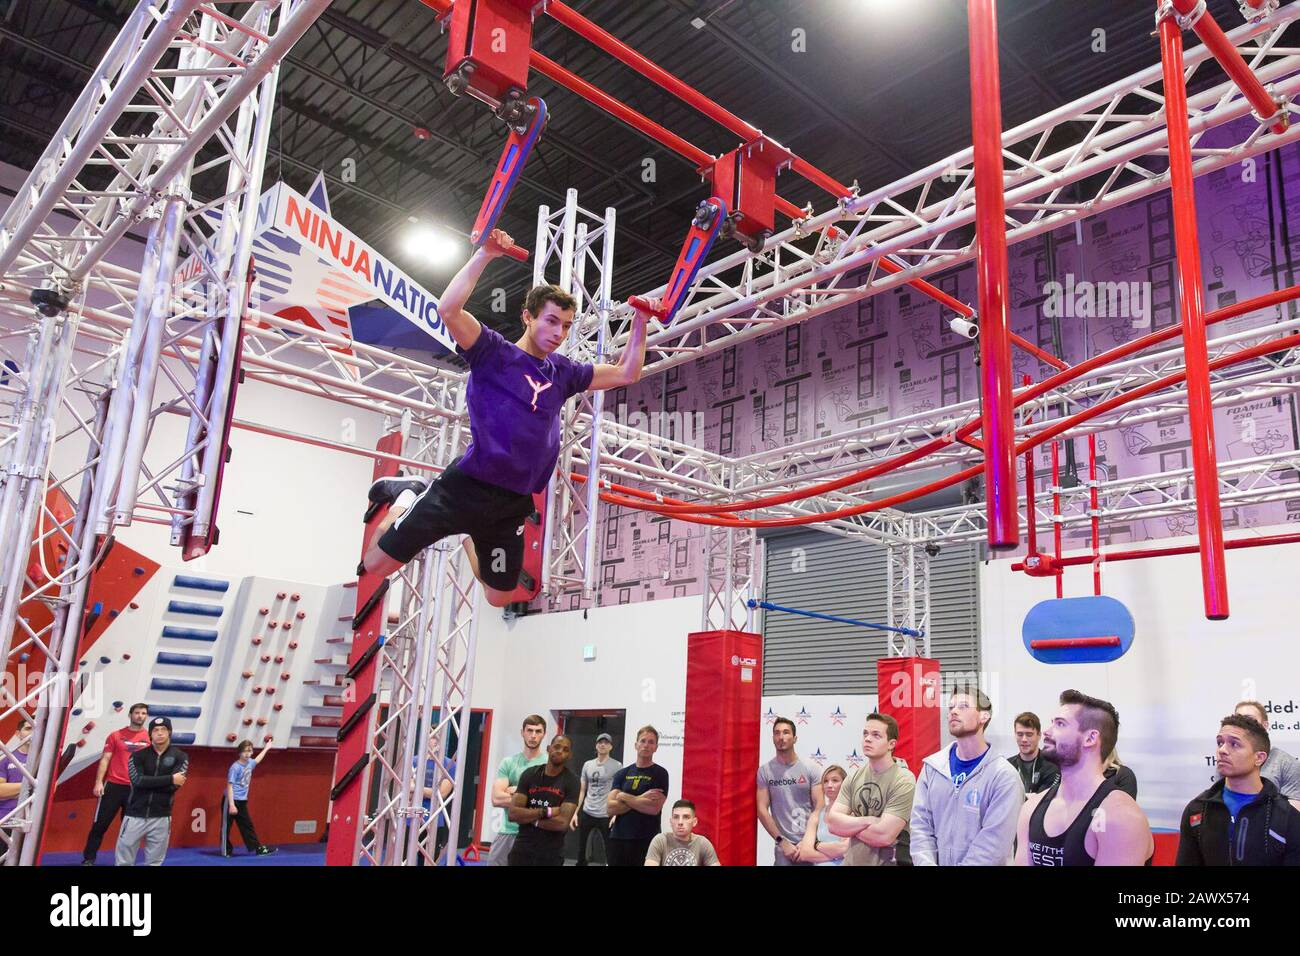 Dallas, USA. 9th Feb, 2020. A participant takes part in the Ninja Nation Competition in Dallas, the United States, on Feb. 9, 2020. Credit: Dan Tian/Xinhua/Alamy Live News Stock Photo